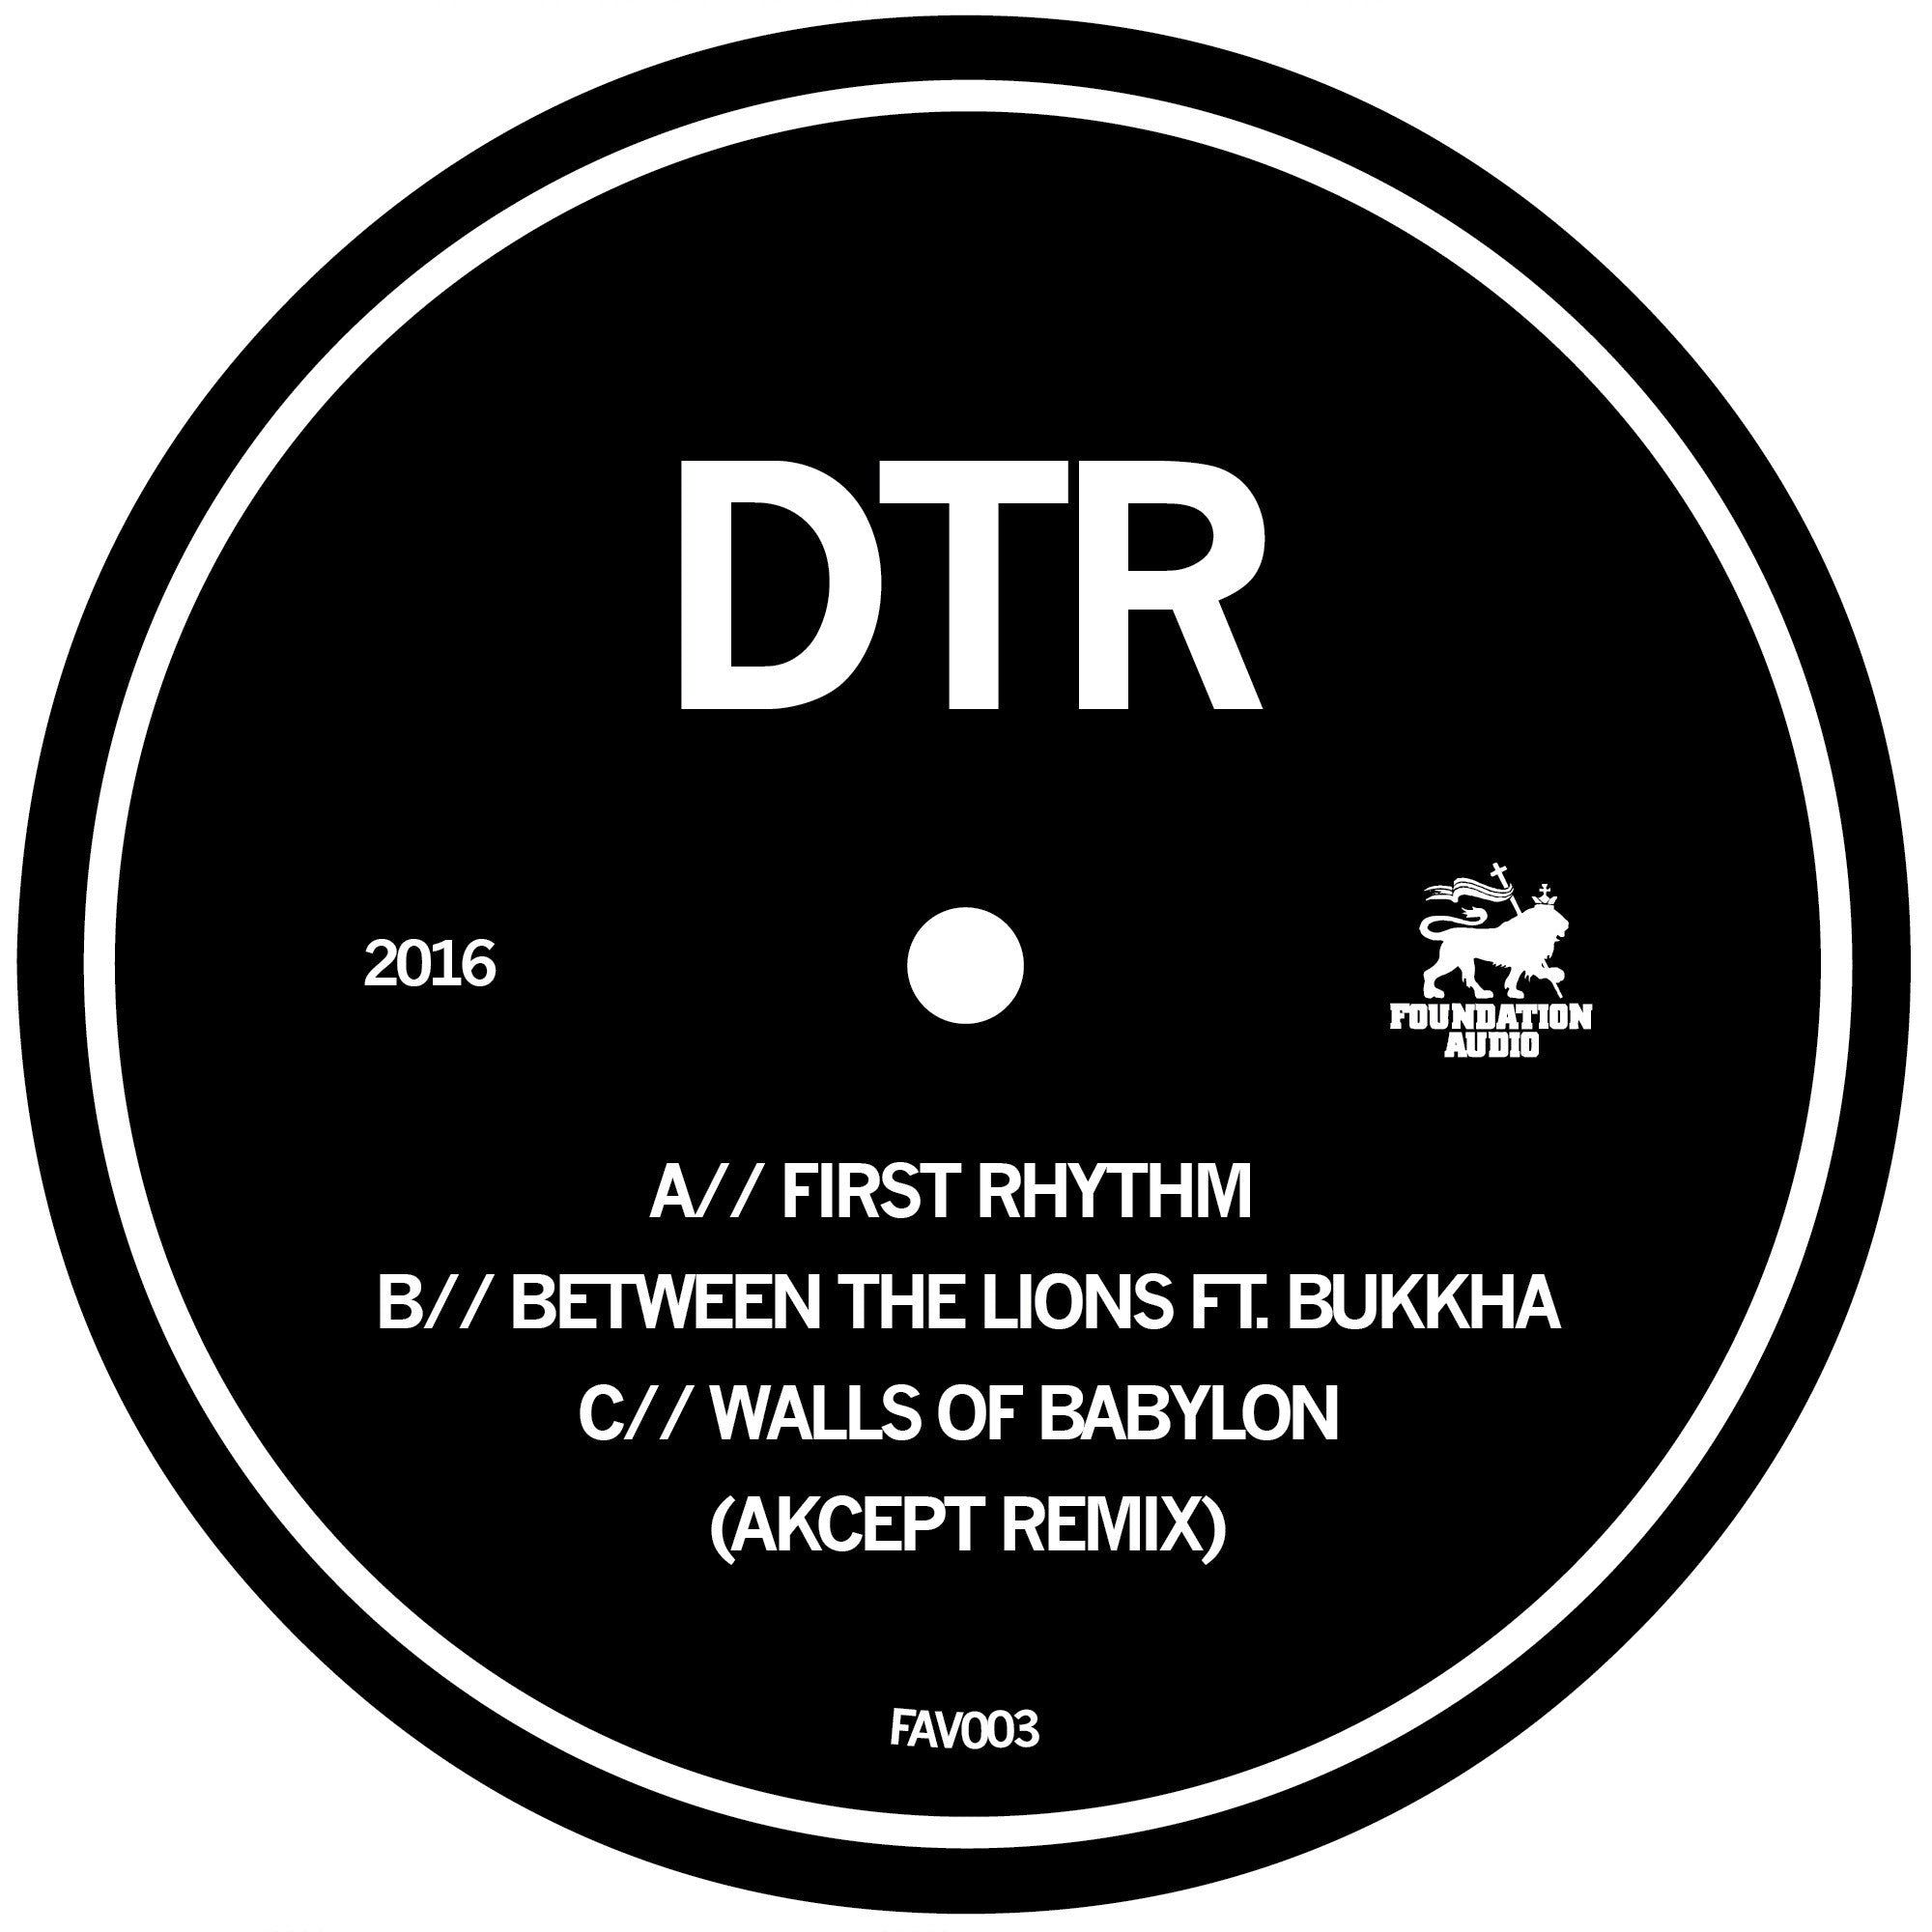 DTR - First Rhythm / Between The Lions (ft. Bukkha) / Walls of Babylon (Akcept remix) , Vinyl - Foundation Audio, Unearthed Sounds